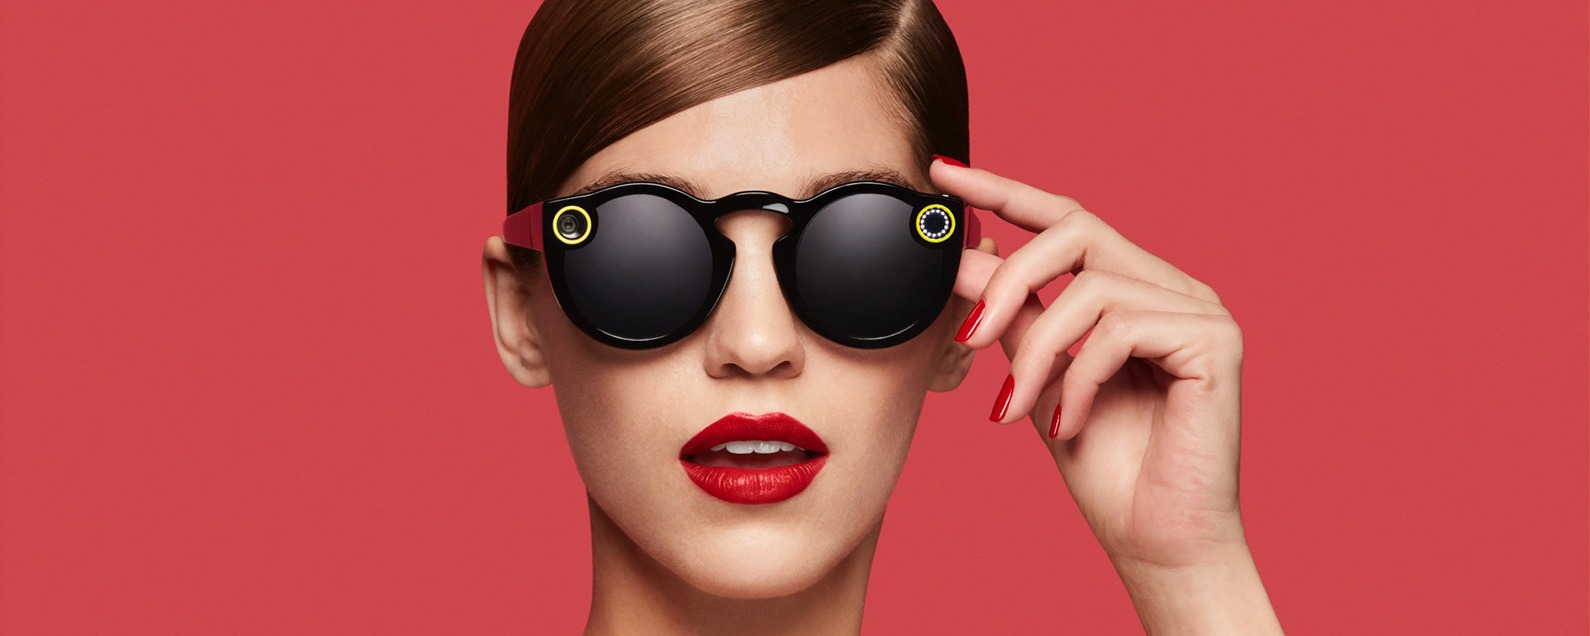 Snapchat Spectacle Glasses Can Now Be Ordered Online